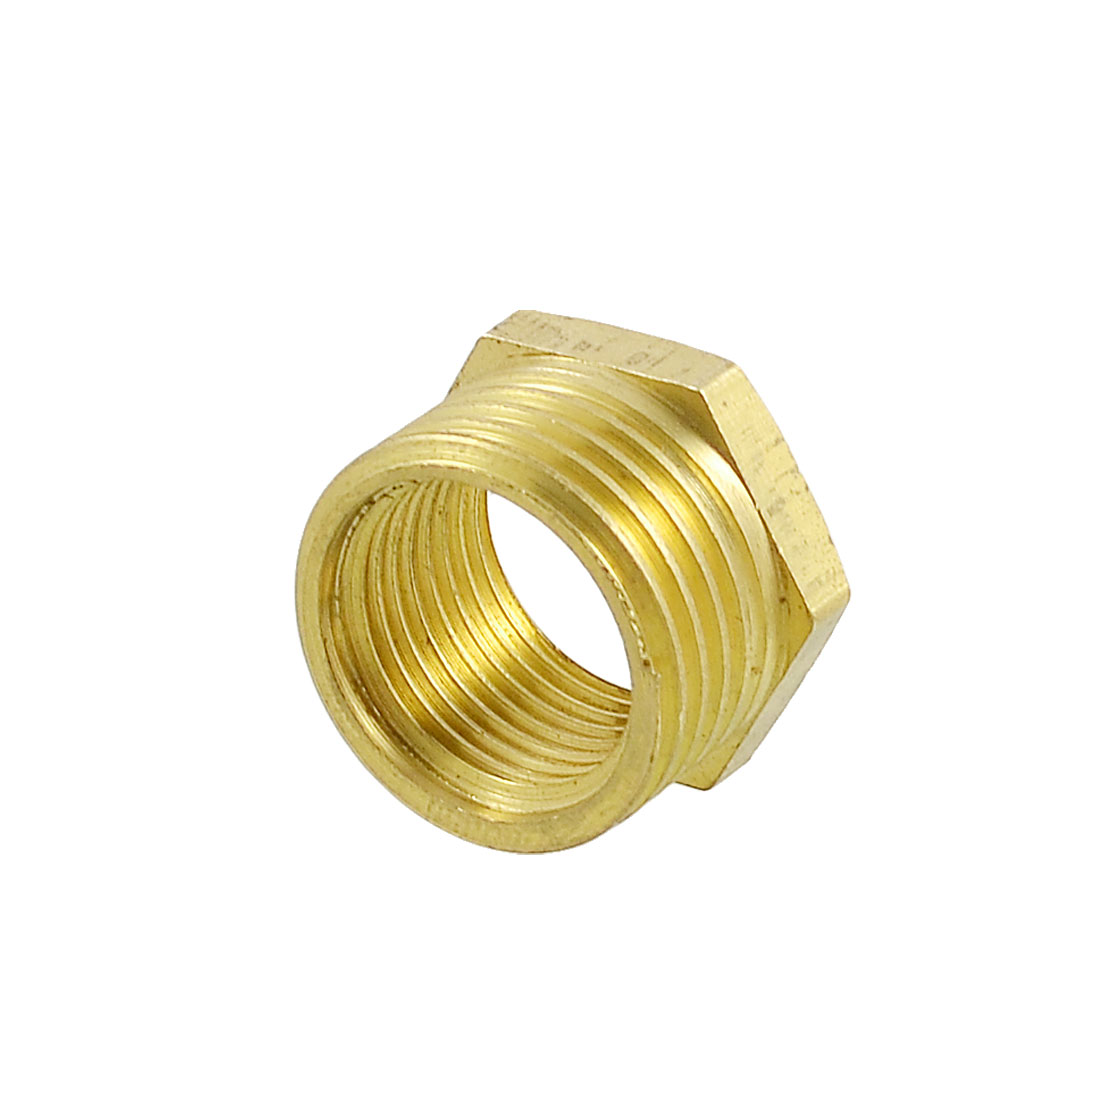 "Pipe Reducer 4/5"" x 3/5"" Thread Brass Hex Bushing Connector"